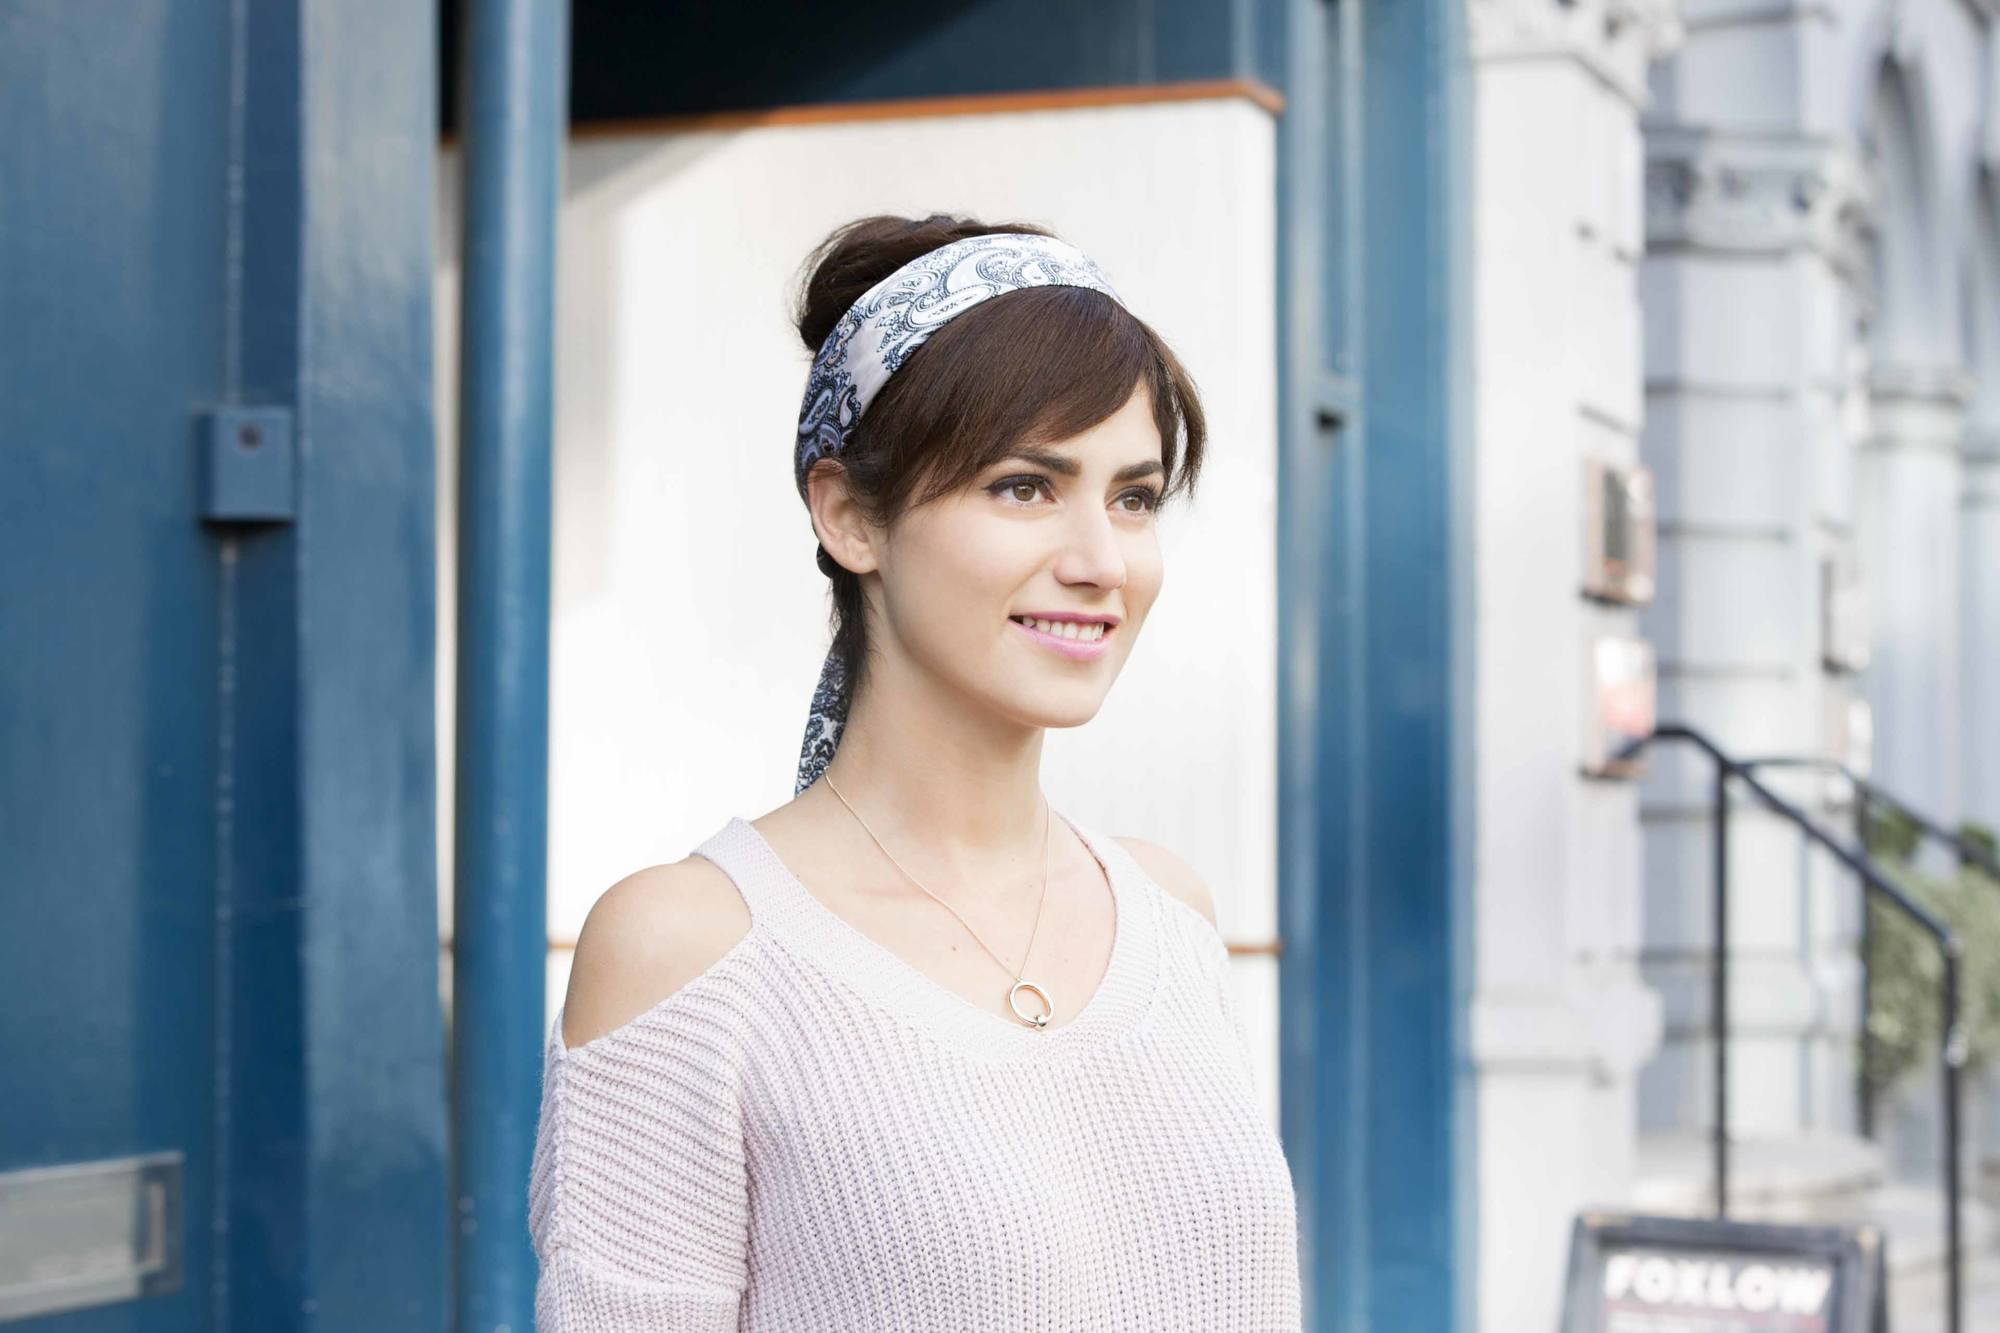 Party hairstyles: Woman with dark brown straight hair styled in a high updo with side fringe wrapped with a blue and white headscarf wearing a cold shoulder knitted top.